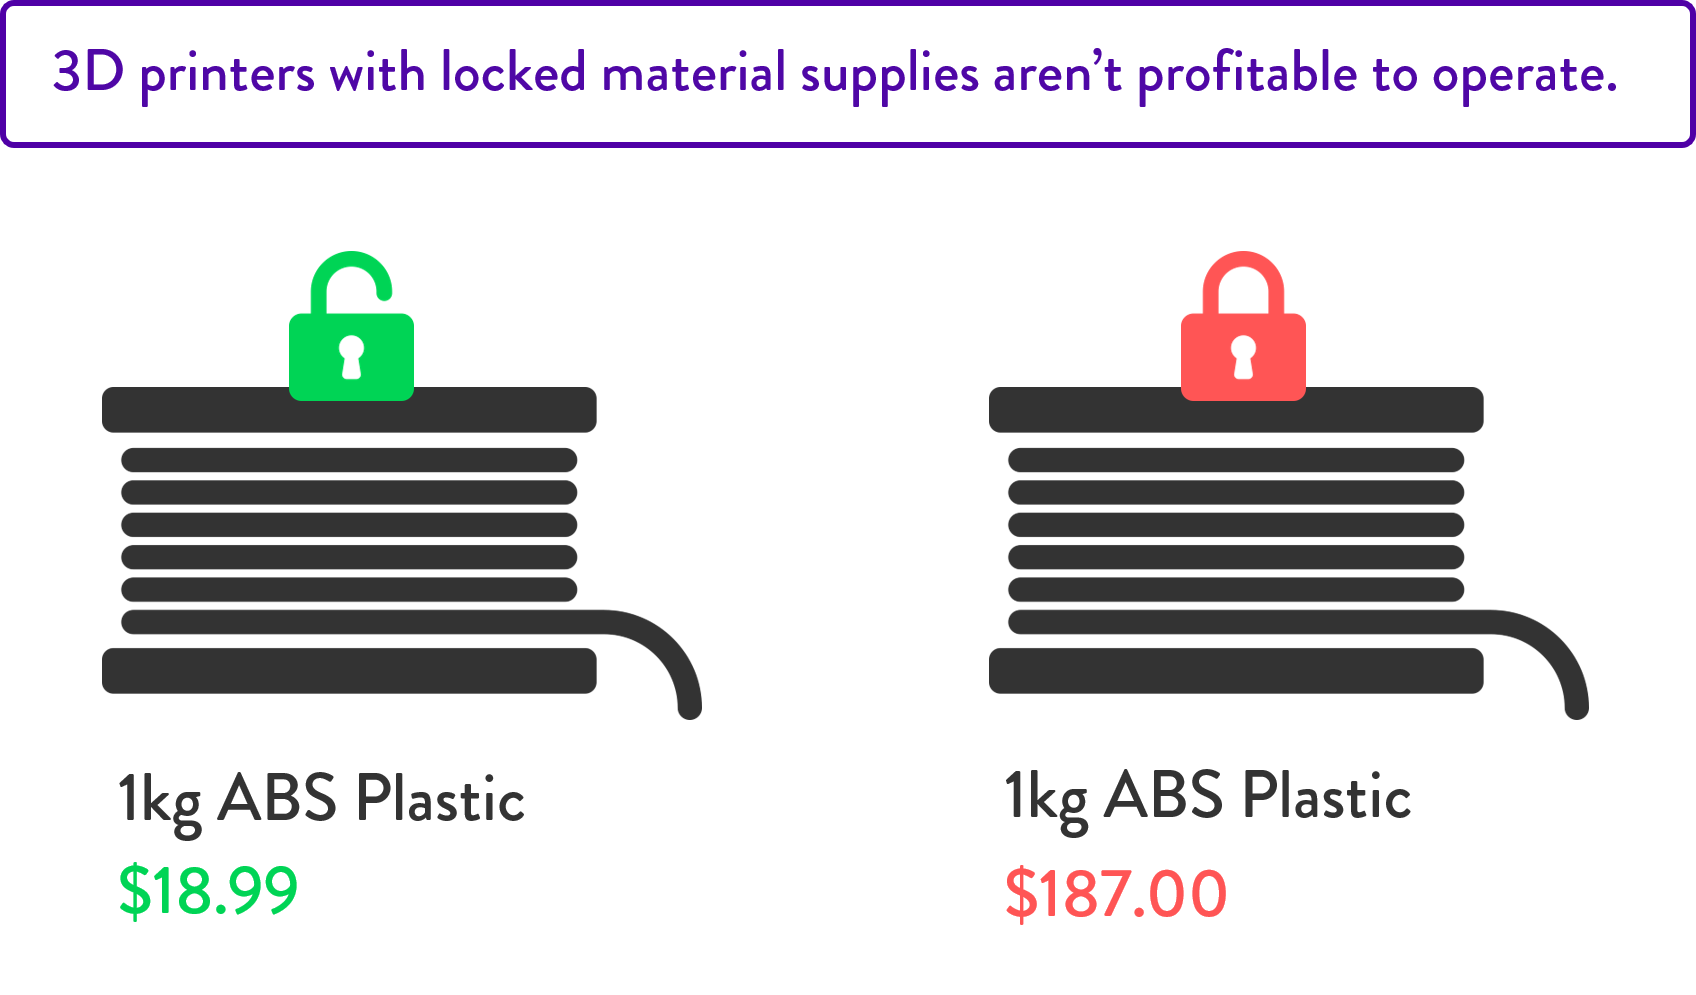 175608560e0d Not only are the proprietary materials priced far above market rate, they  also prevent the operators from using new and experimental materials from  other ...